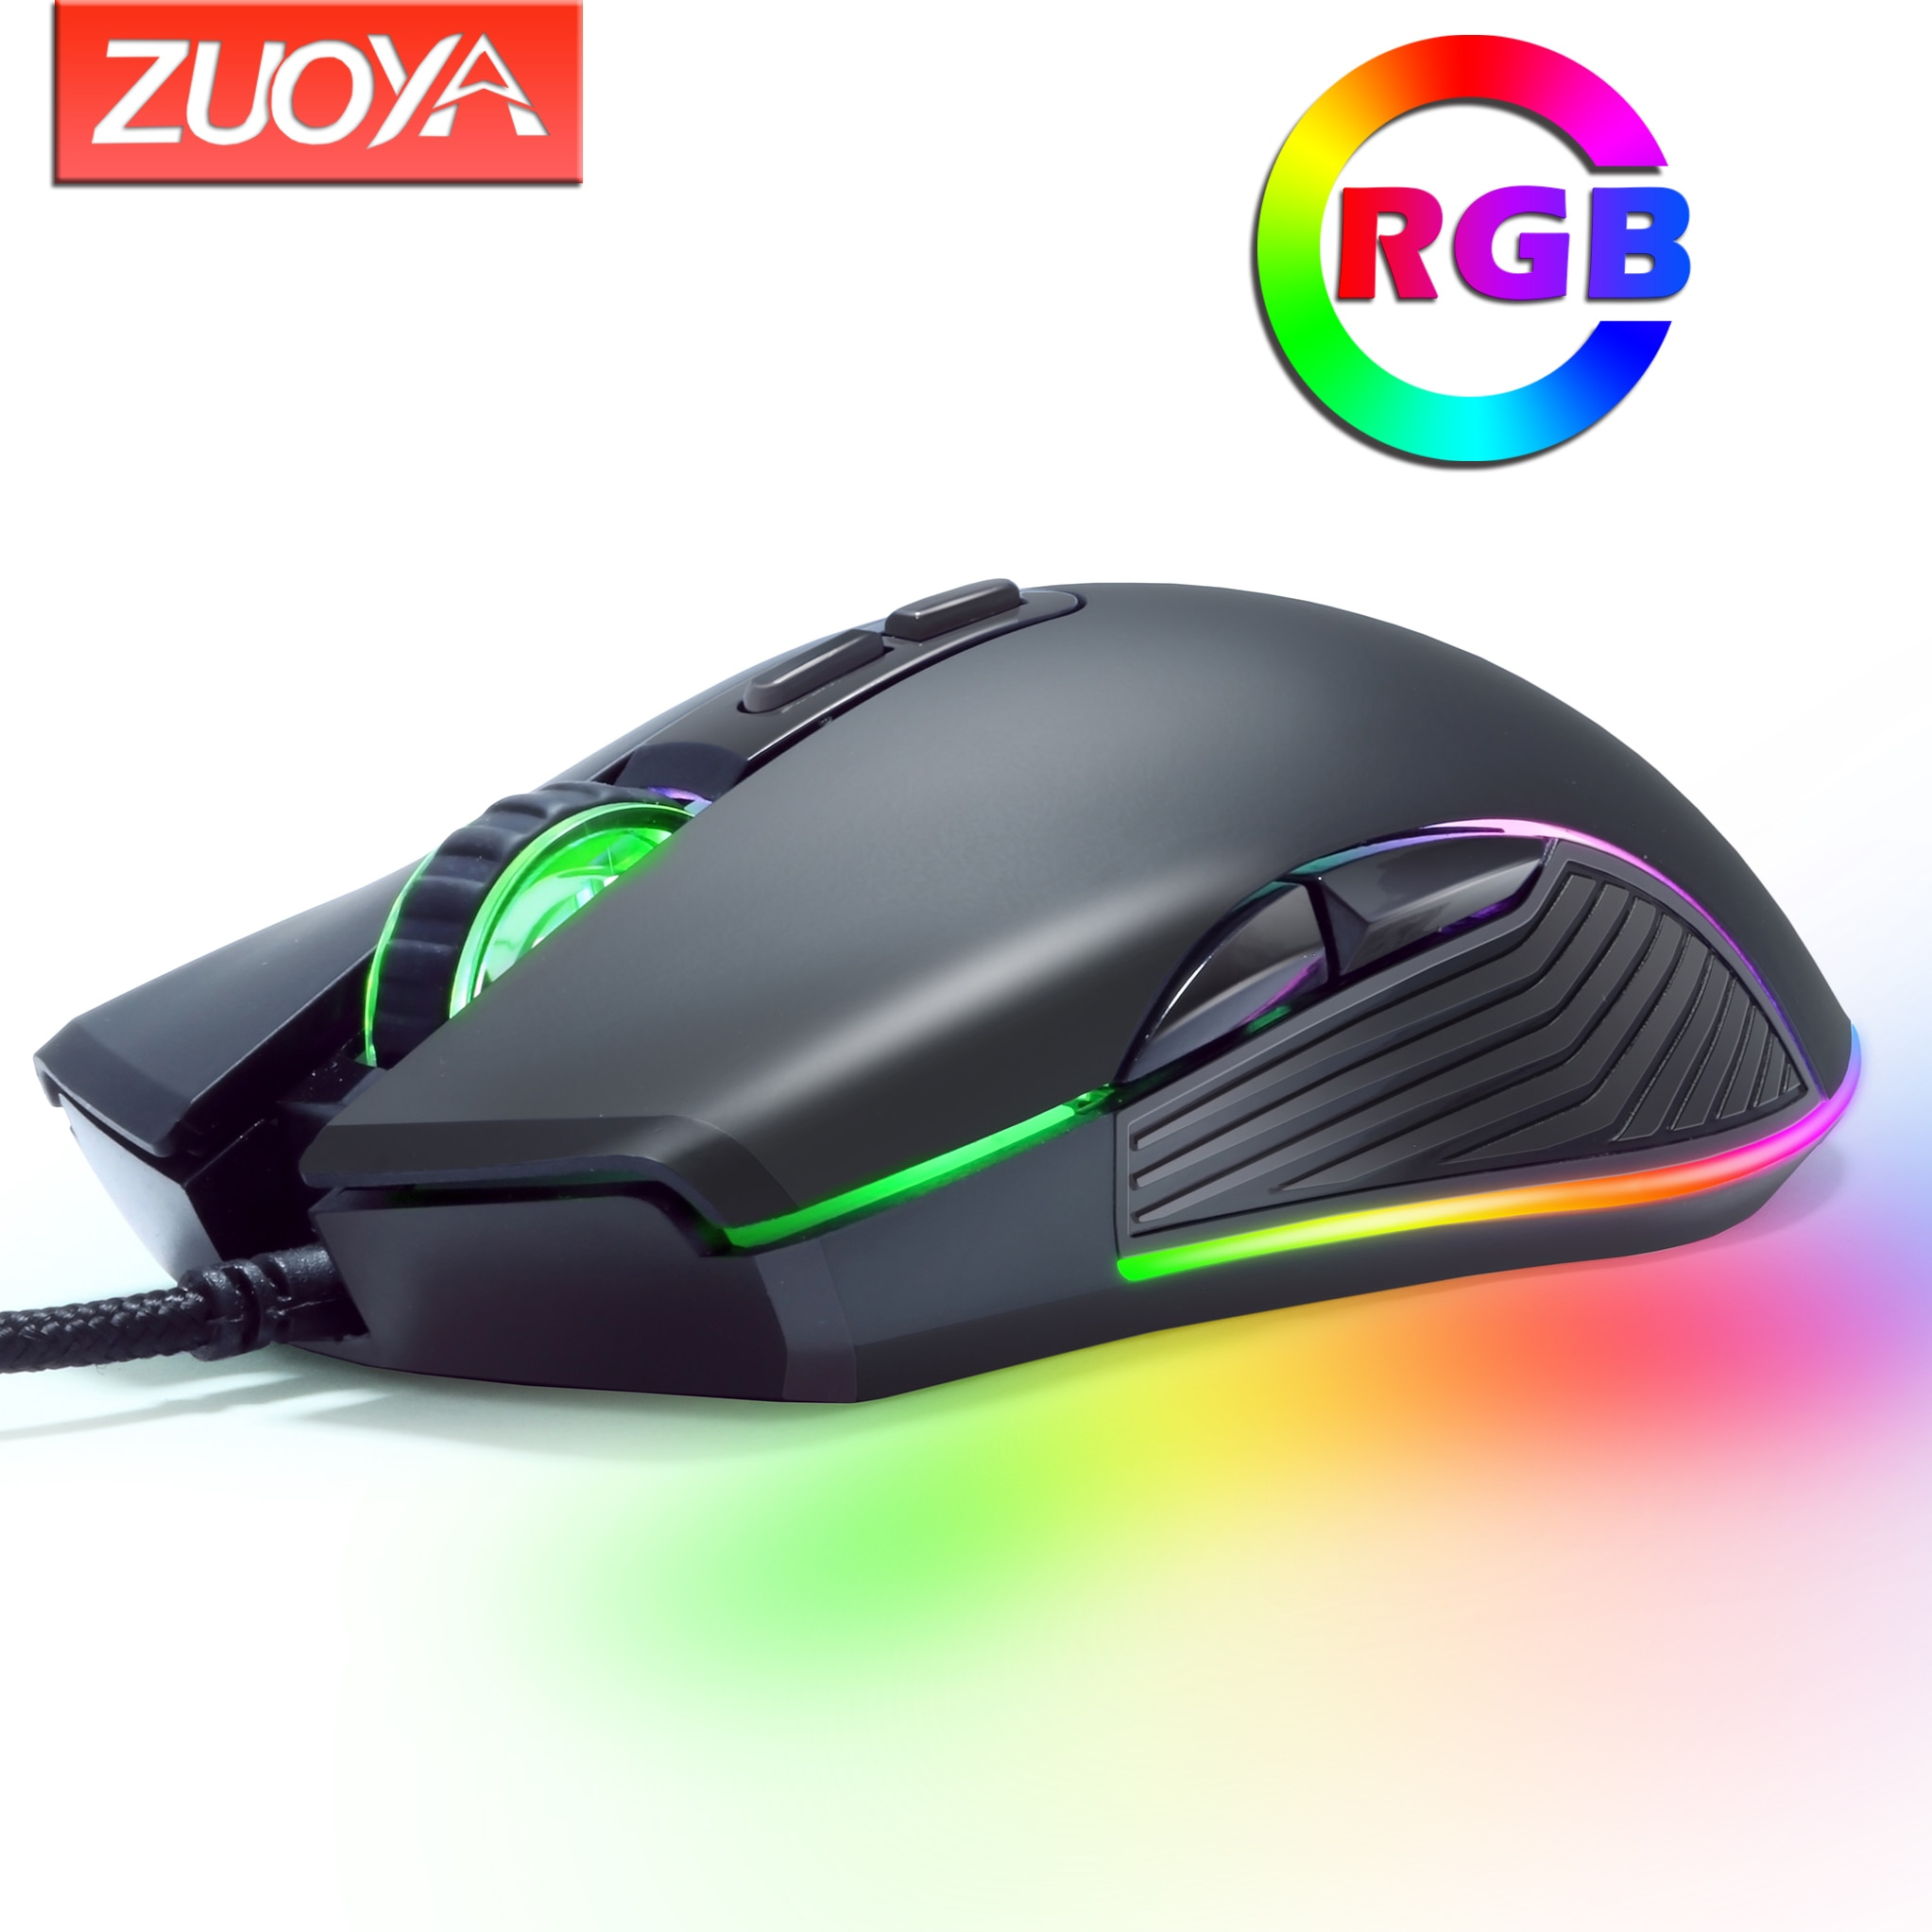 Original Wired RGB Gaming Mouse Optical Gamer Mice Adjustable DPI With Backlight For Laptop Computer